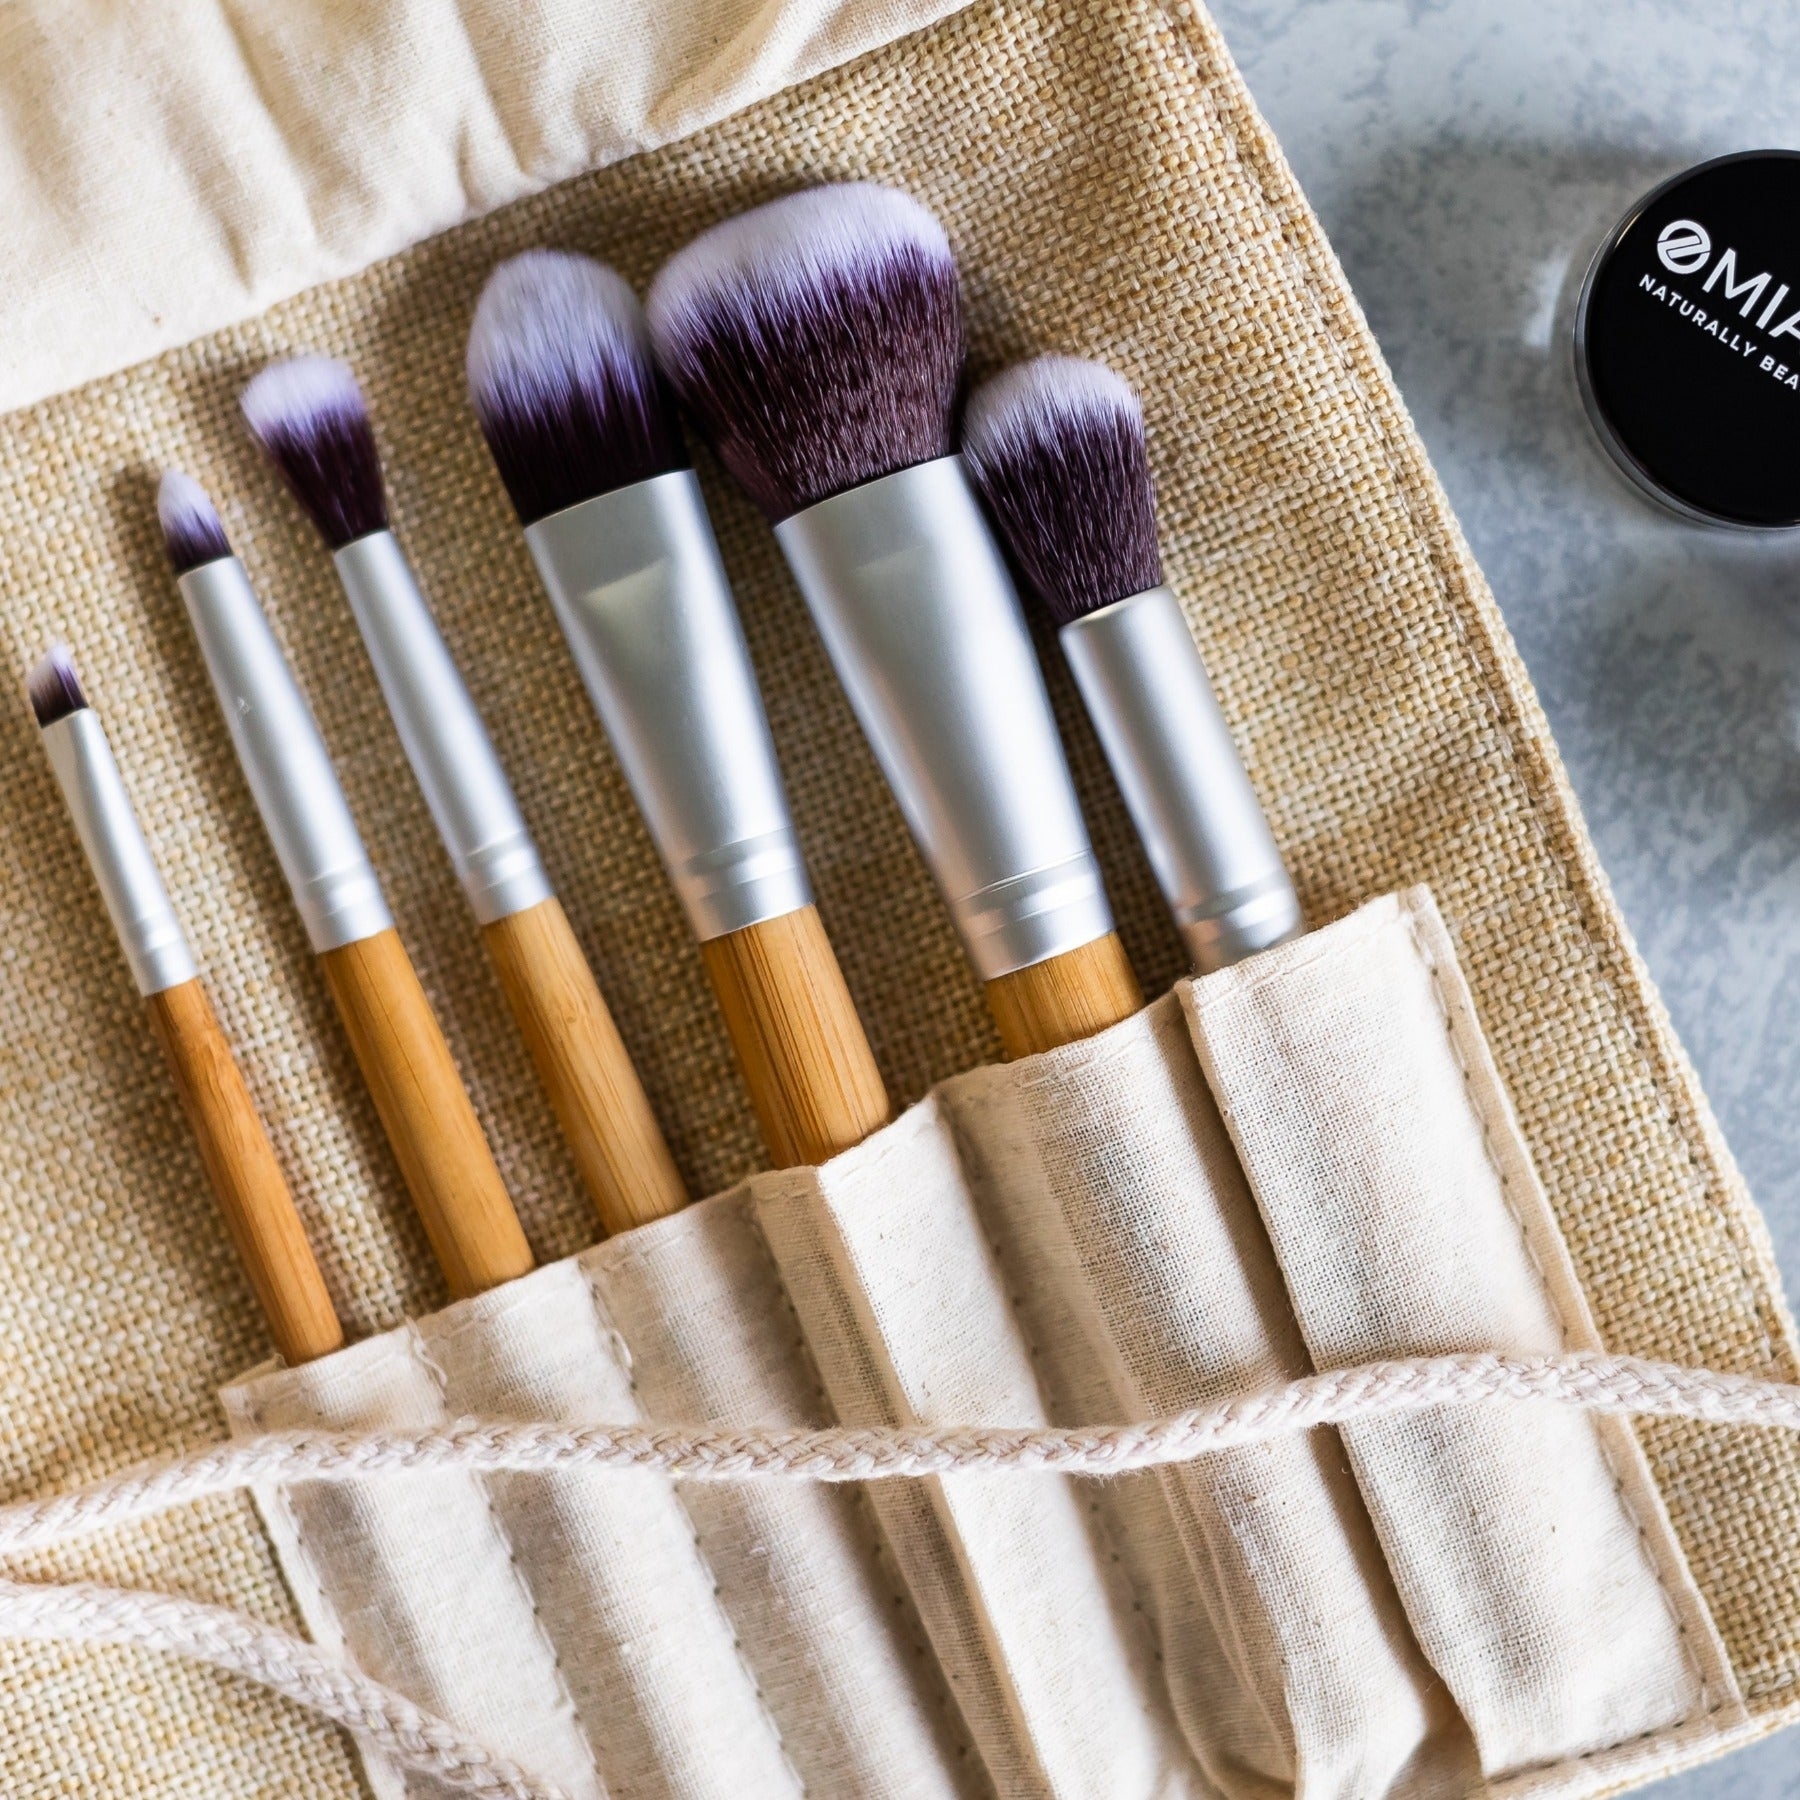 Vegan Makeup Brushes for Mineral Cosmetics